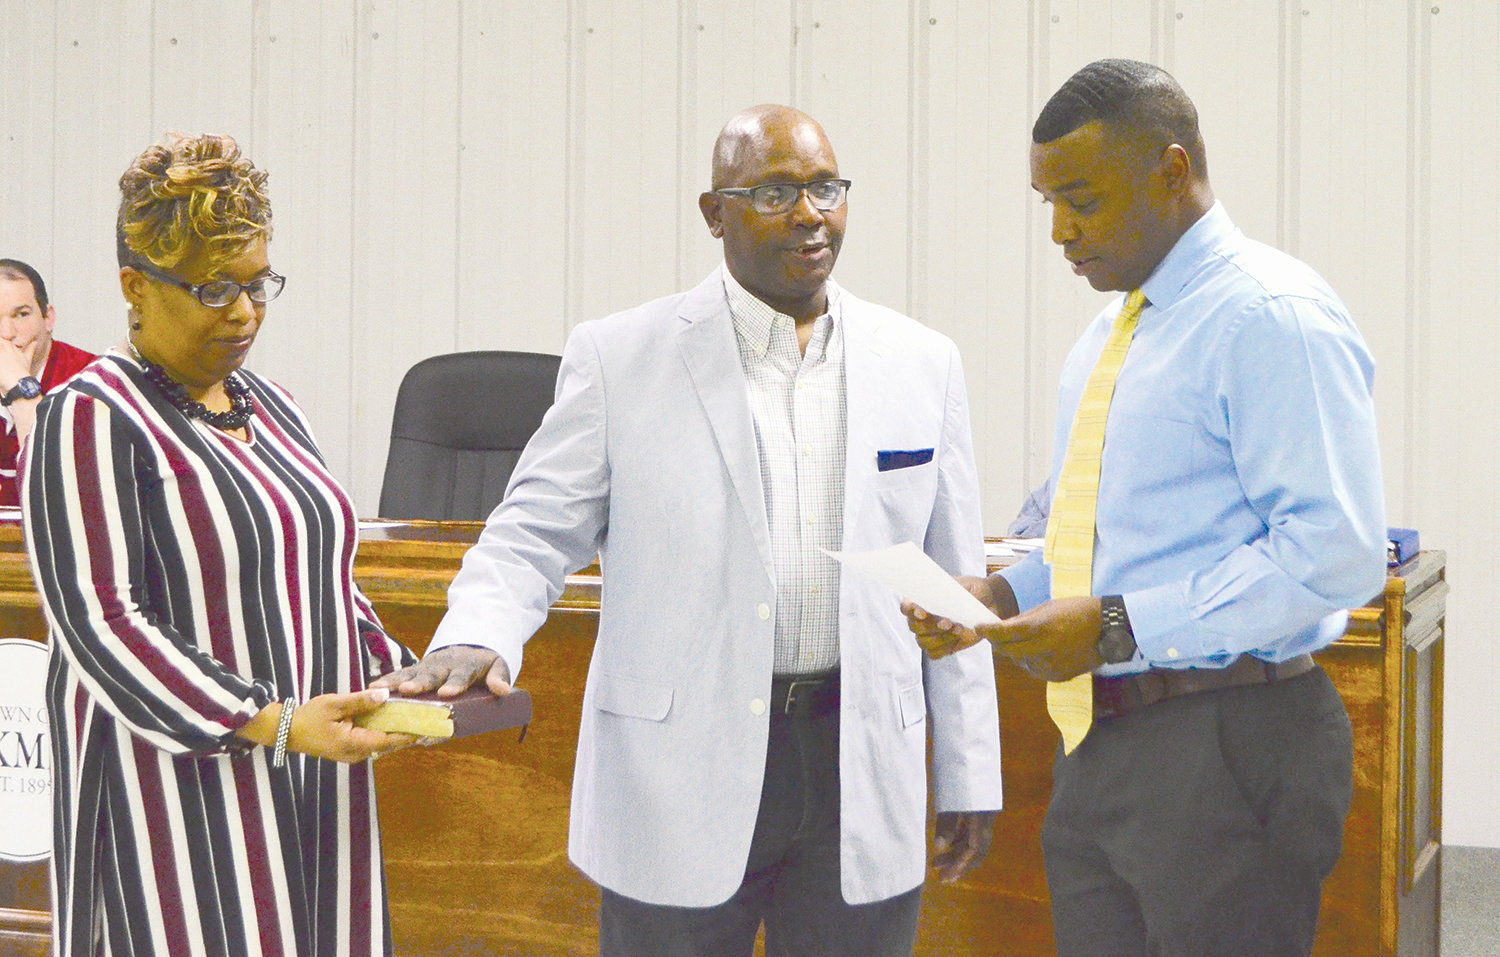 Rodney Harris, at center, stands alongside his wife as he is sworn in as the newest member of the Oakman Town Council by Mayor Cory Franks.